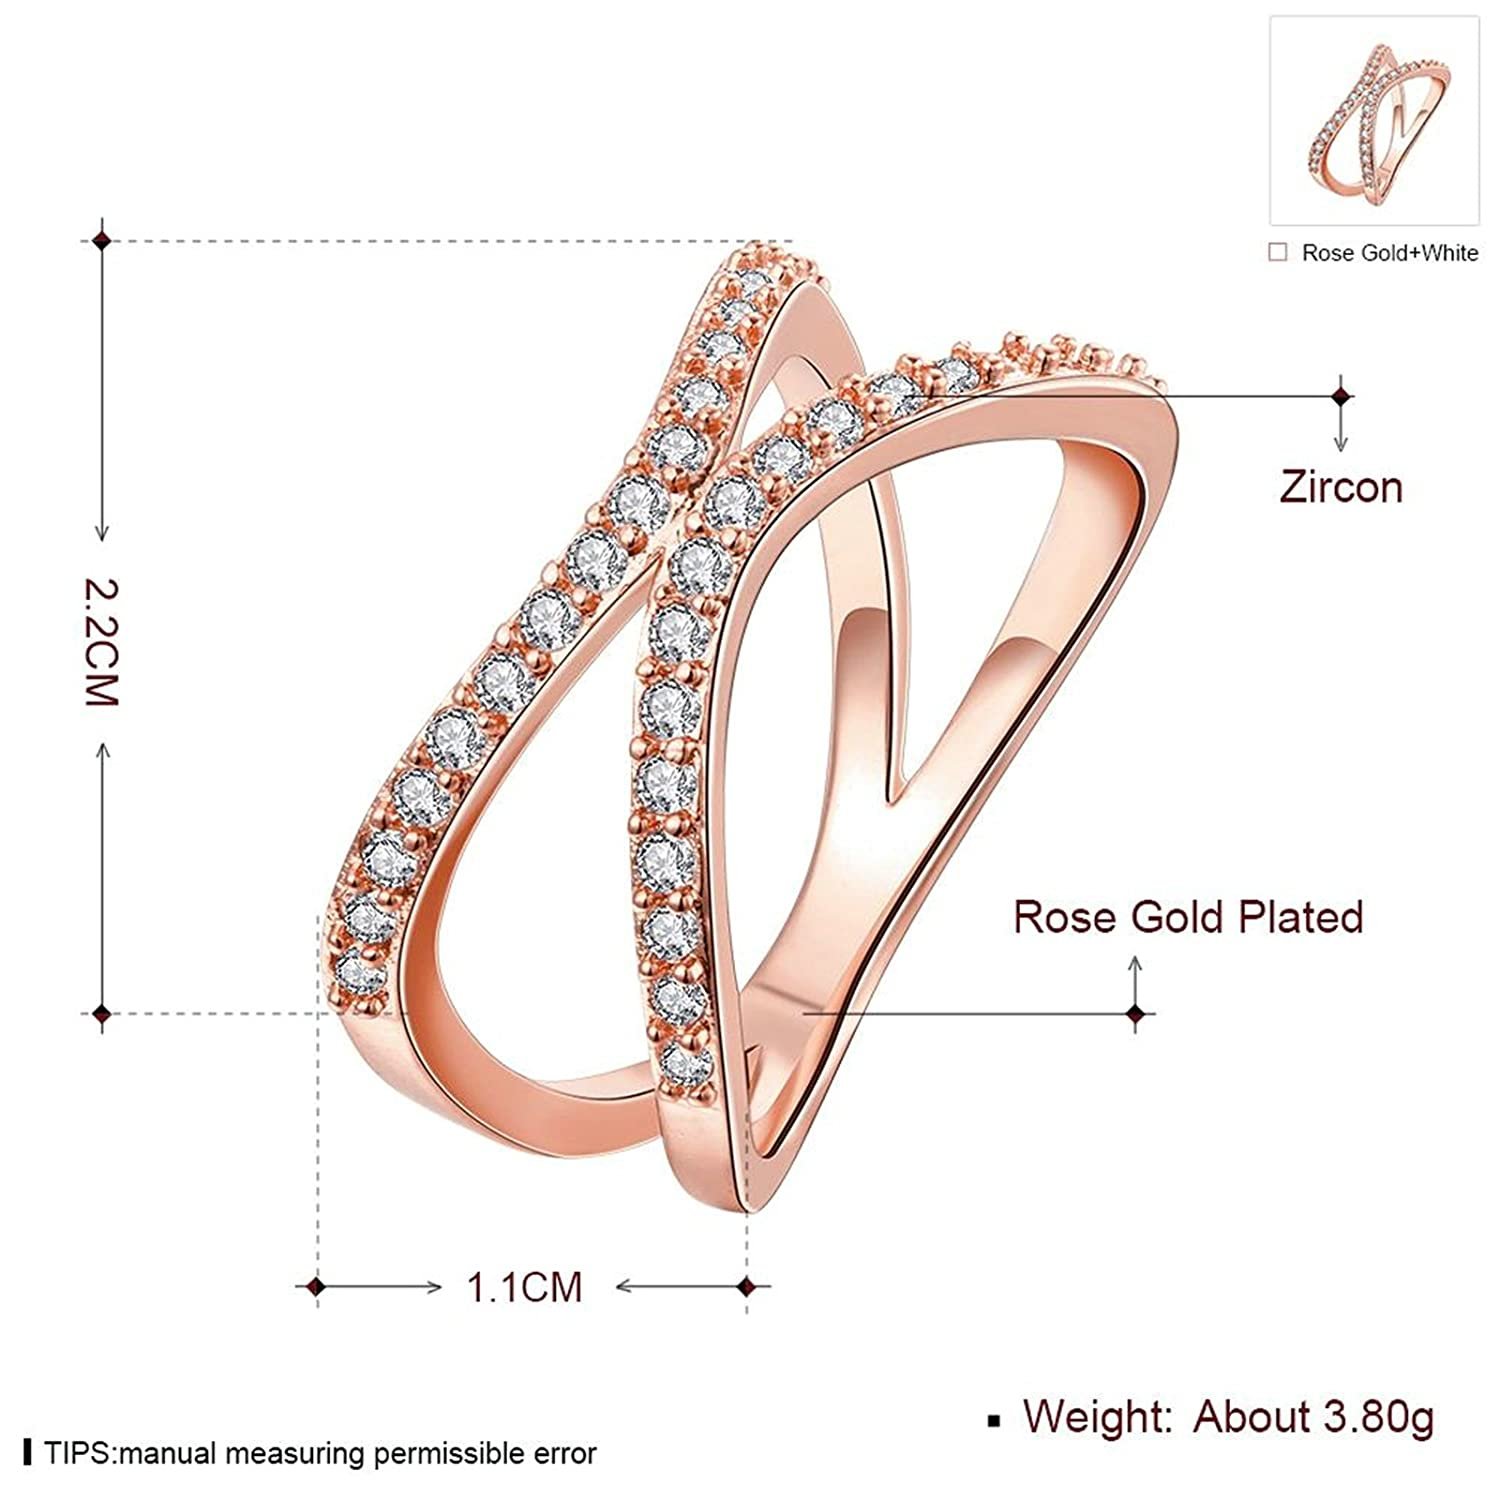 Gnzoe Jewelry 18K Rose Gold Plated Women Rings Design Chic Geometry Inlaid CZ Size 8